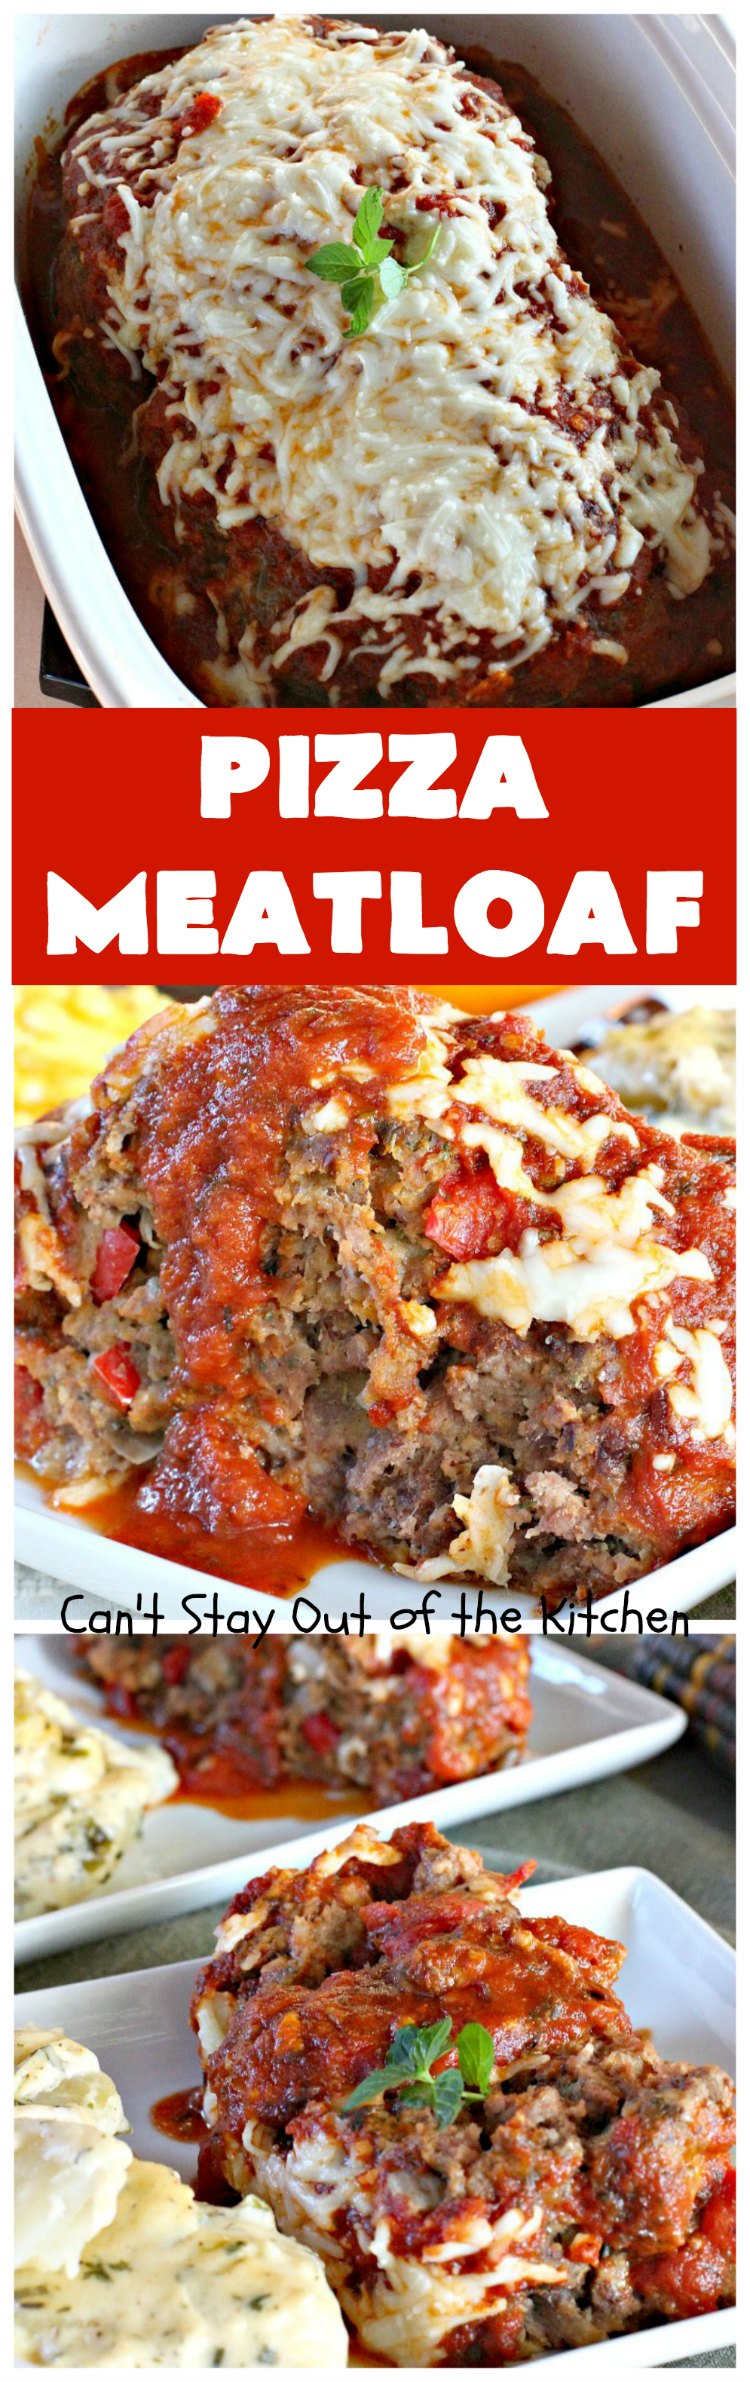 Bbq meatloaf cant stay out of the kitchen pizza meatloaf cant stay out of the kitchen this jazzed up forumfinder Gallery